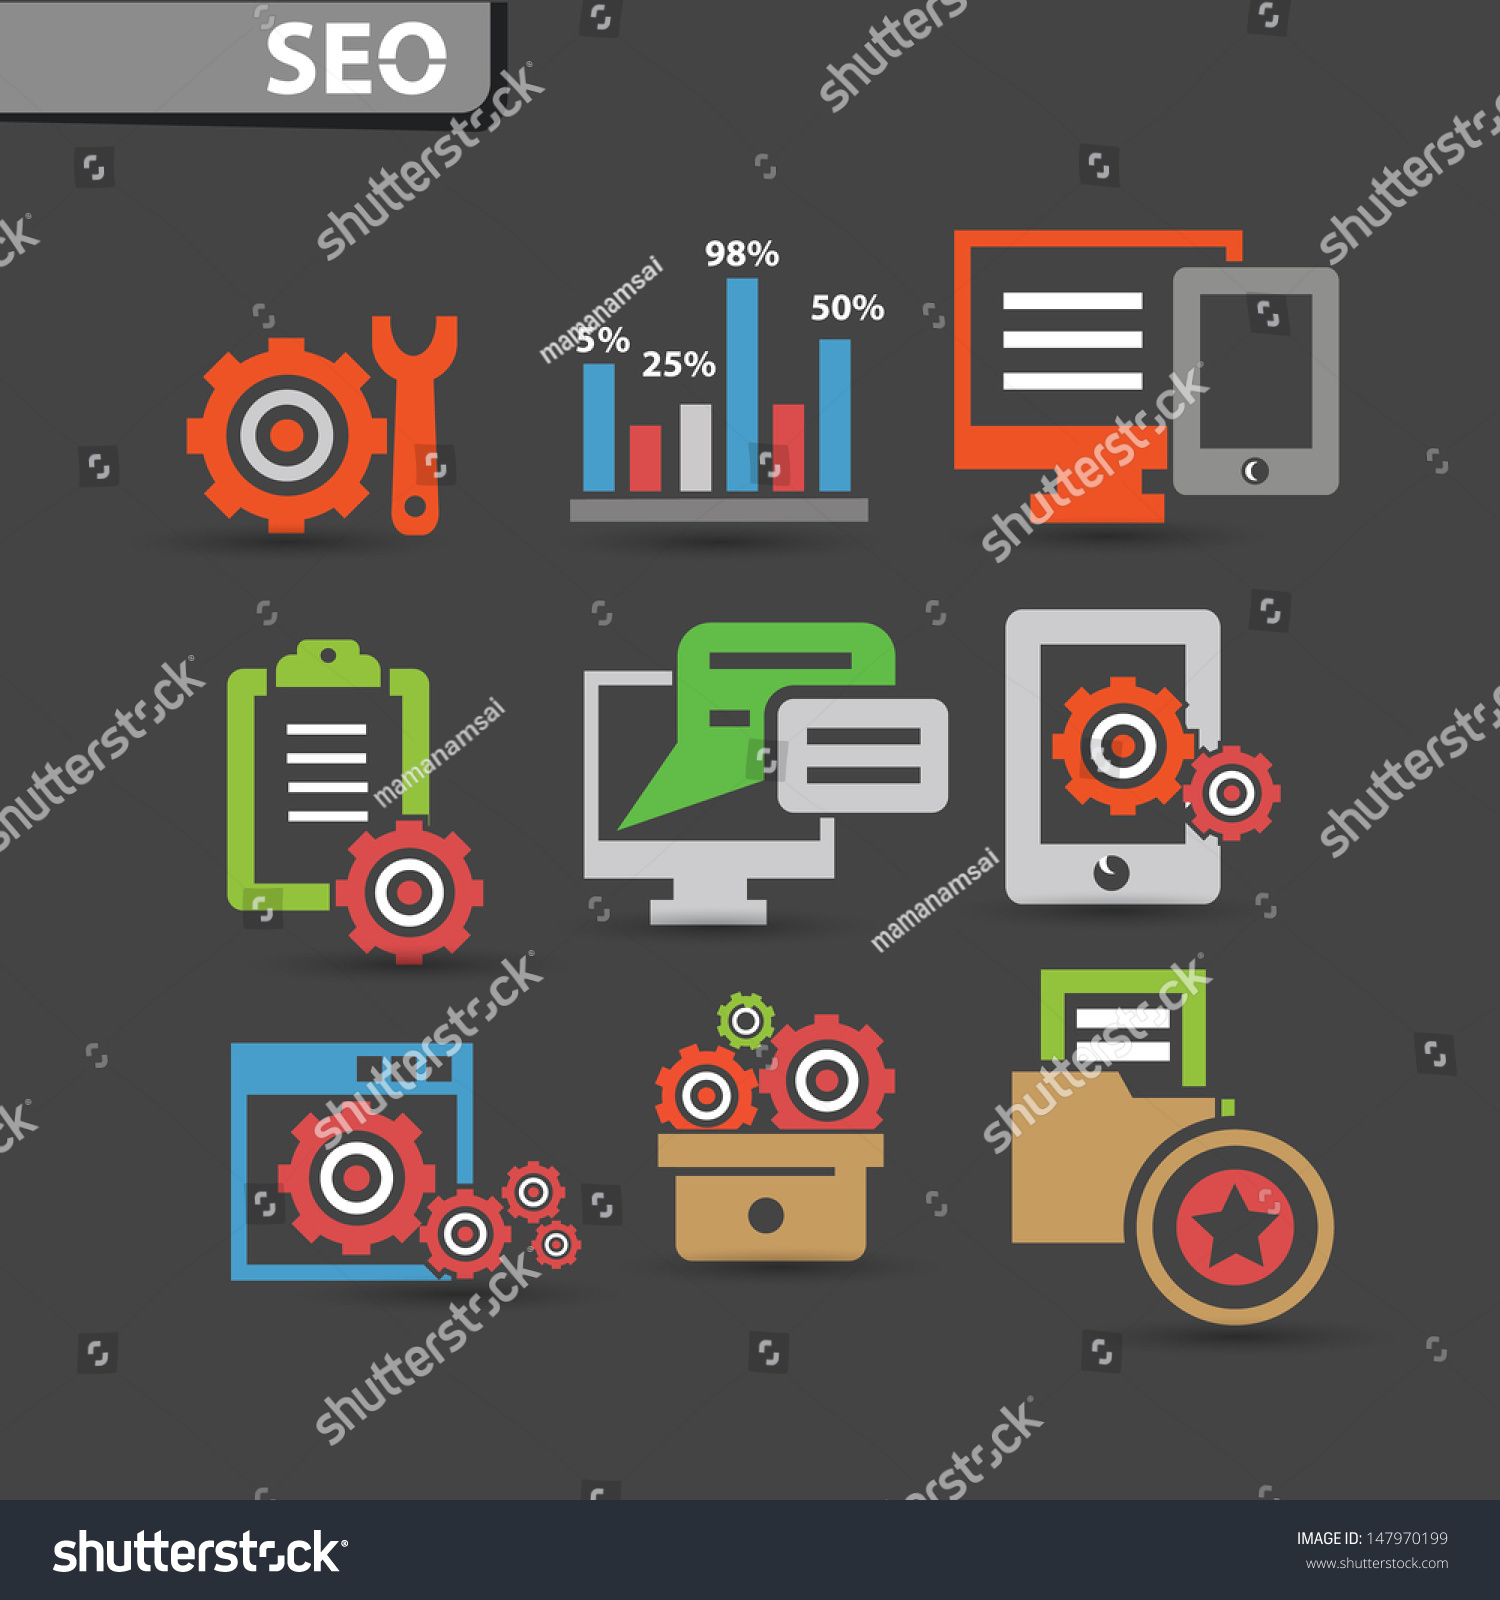 Seo icons software iconsvector stock vector 147970199 Vector image software